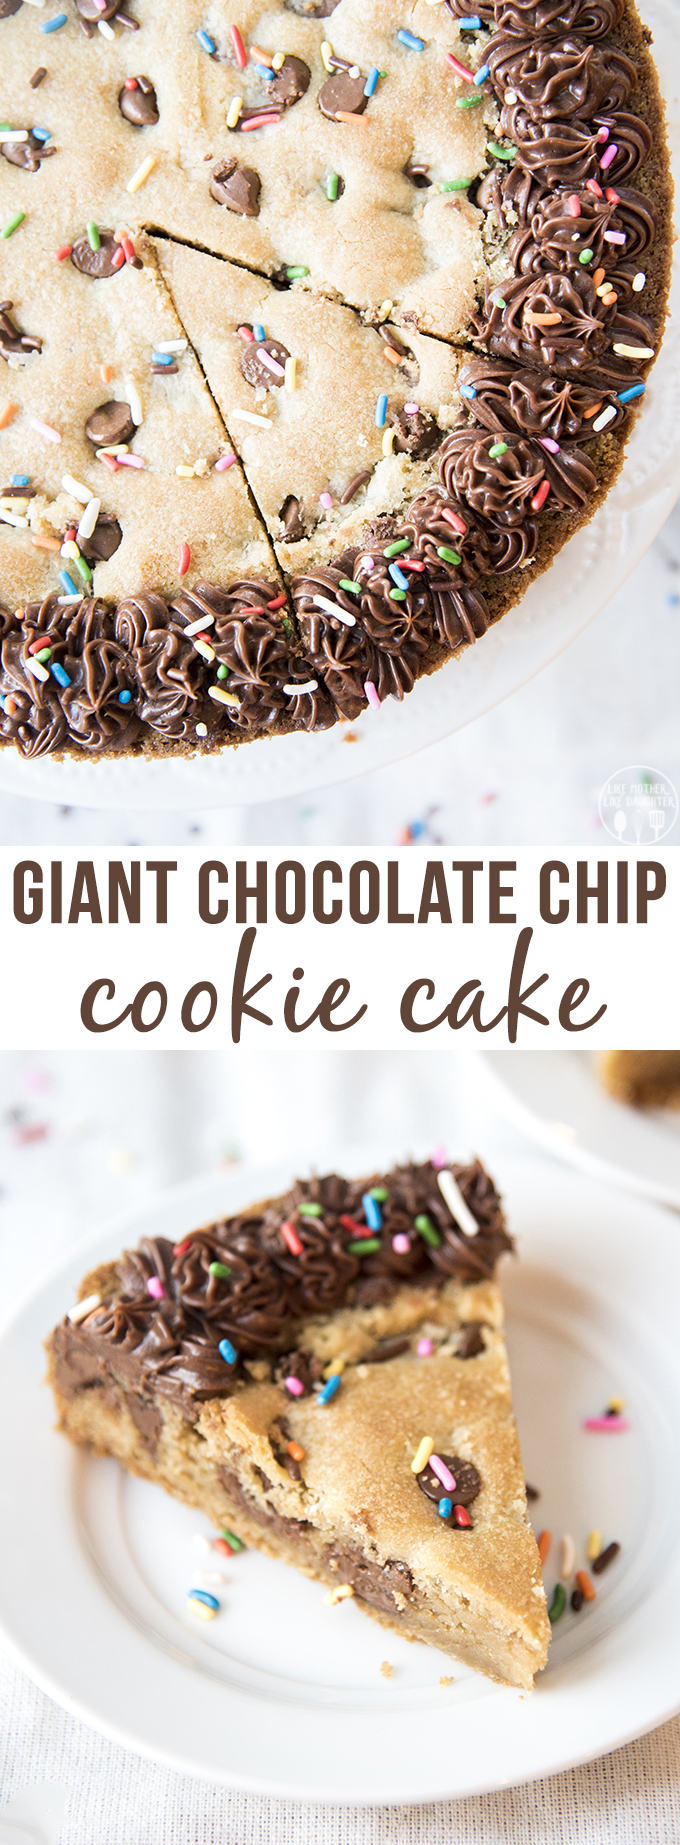 Giant Chocolate Chip Cookie Cake – Like Mother, Like Daughter